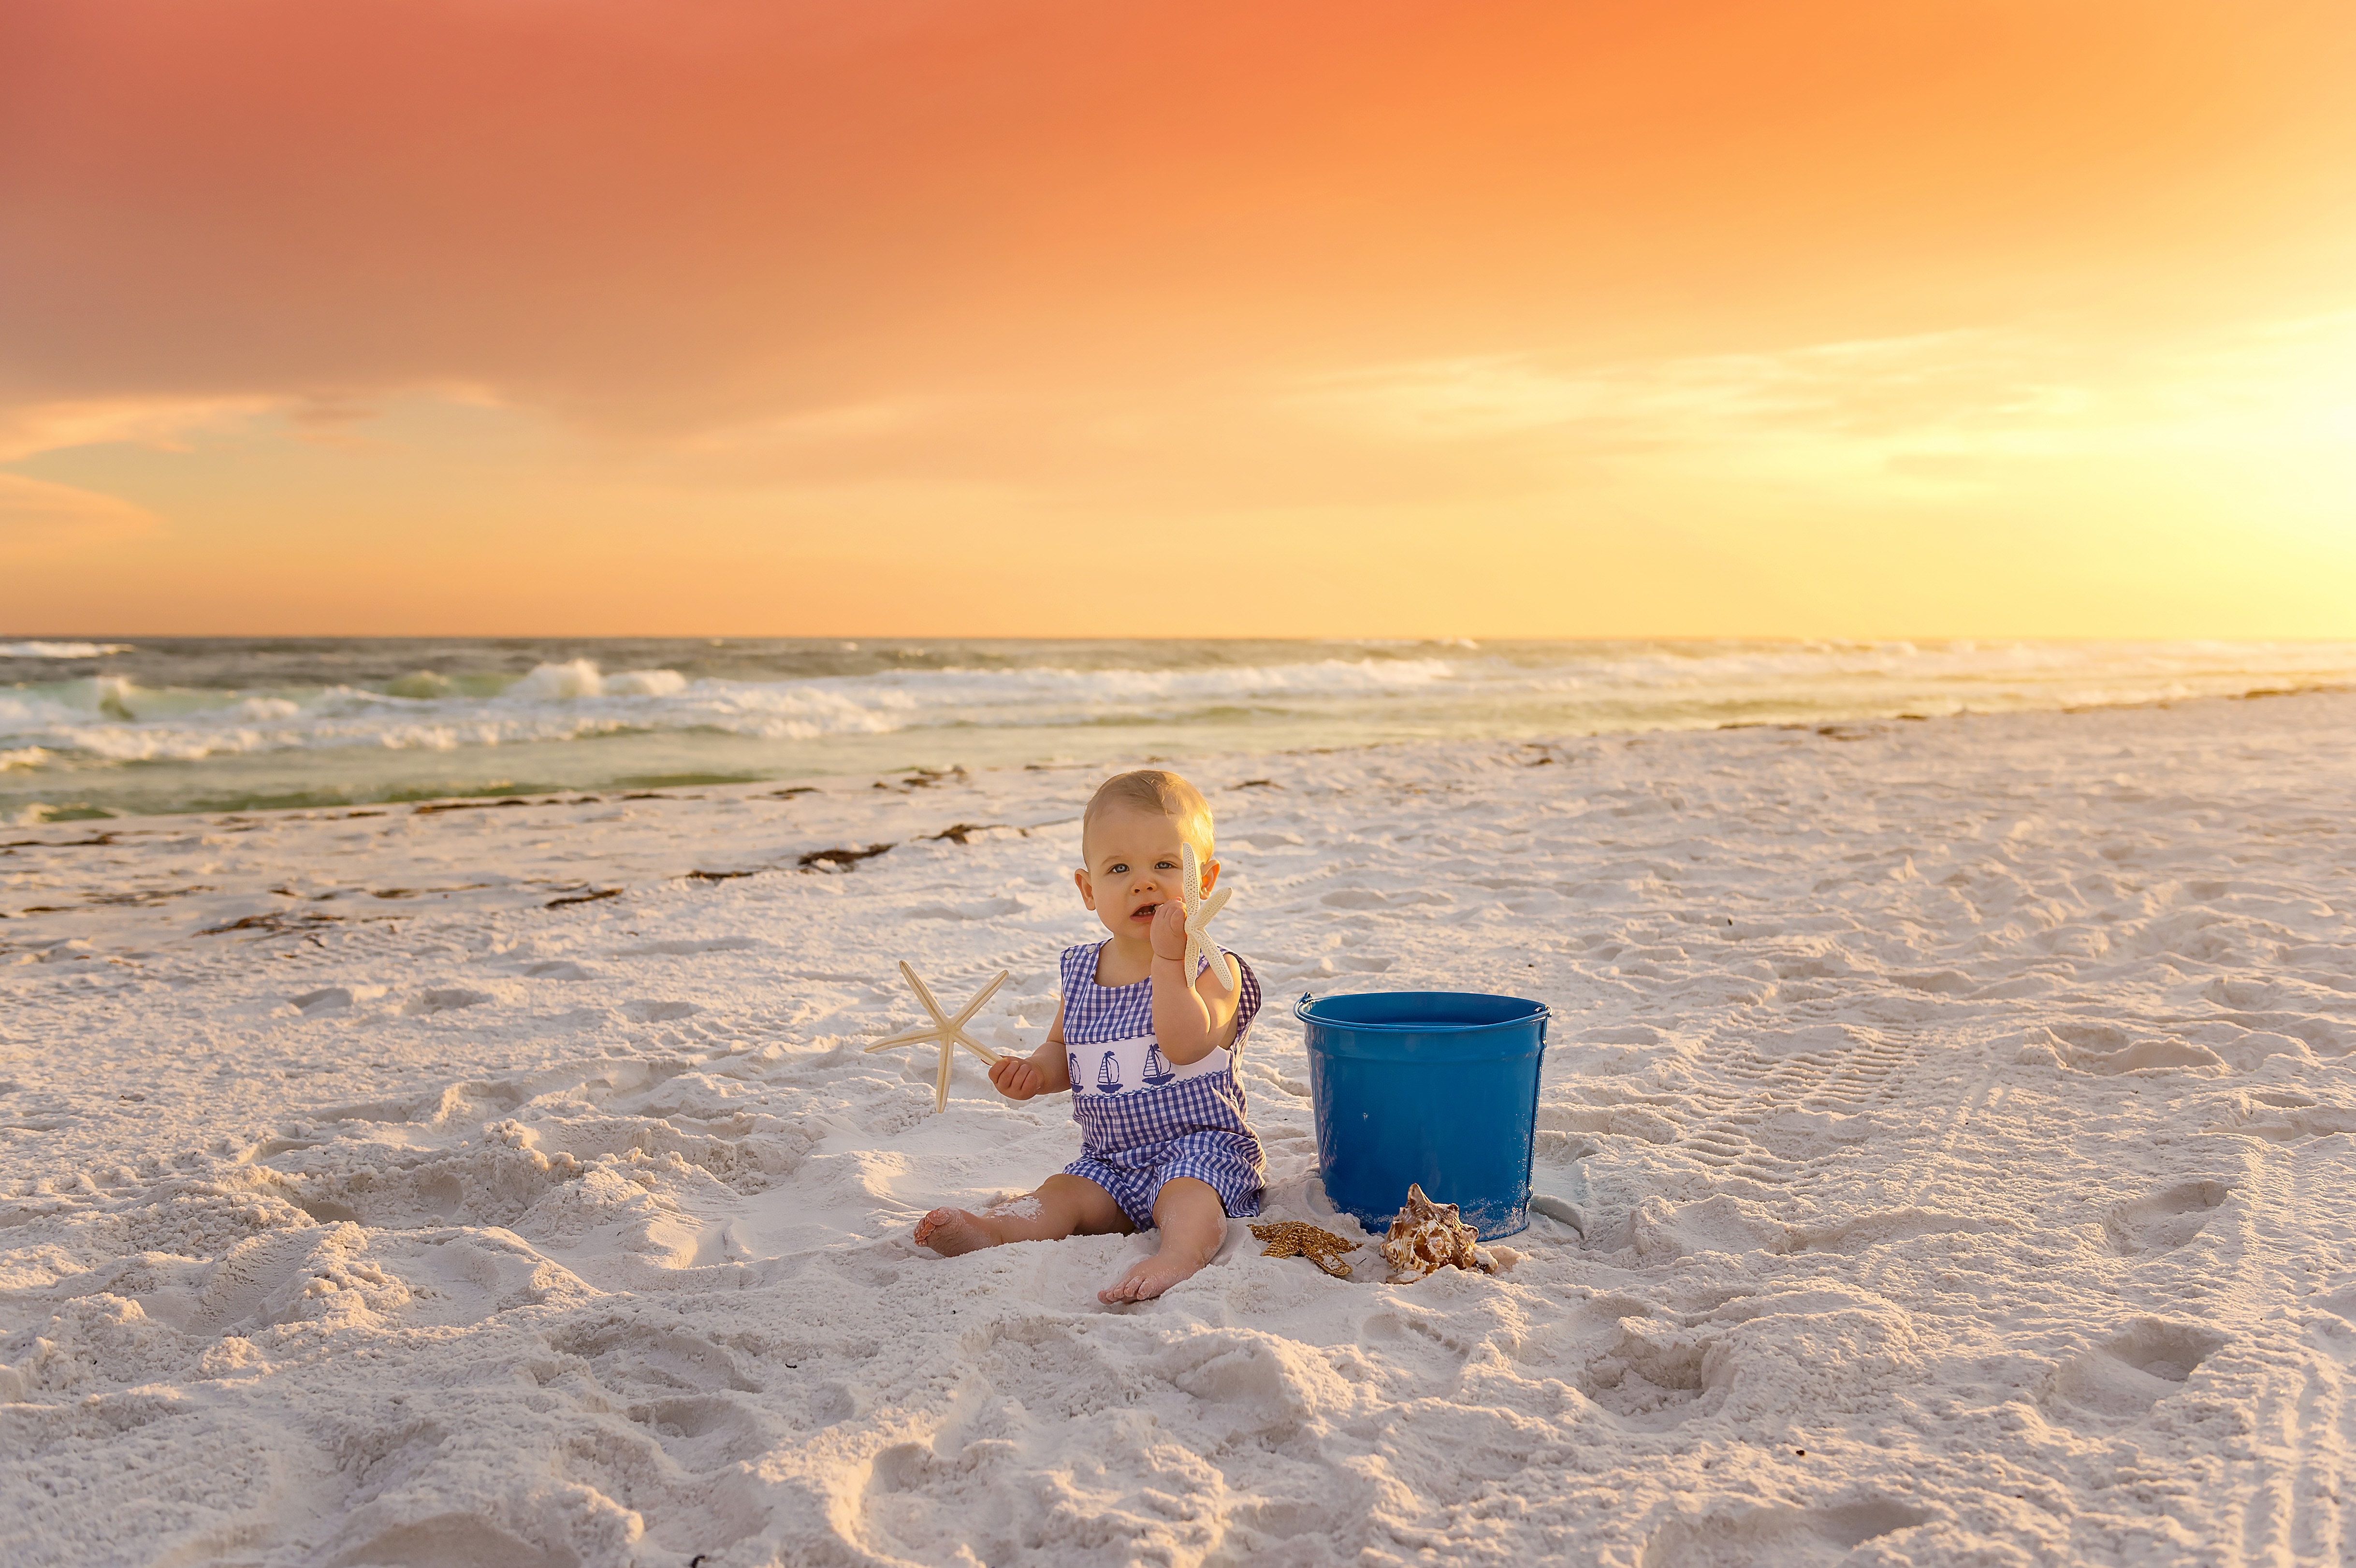 Destin_Florida_Beach_Photographer_0105